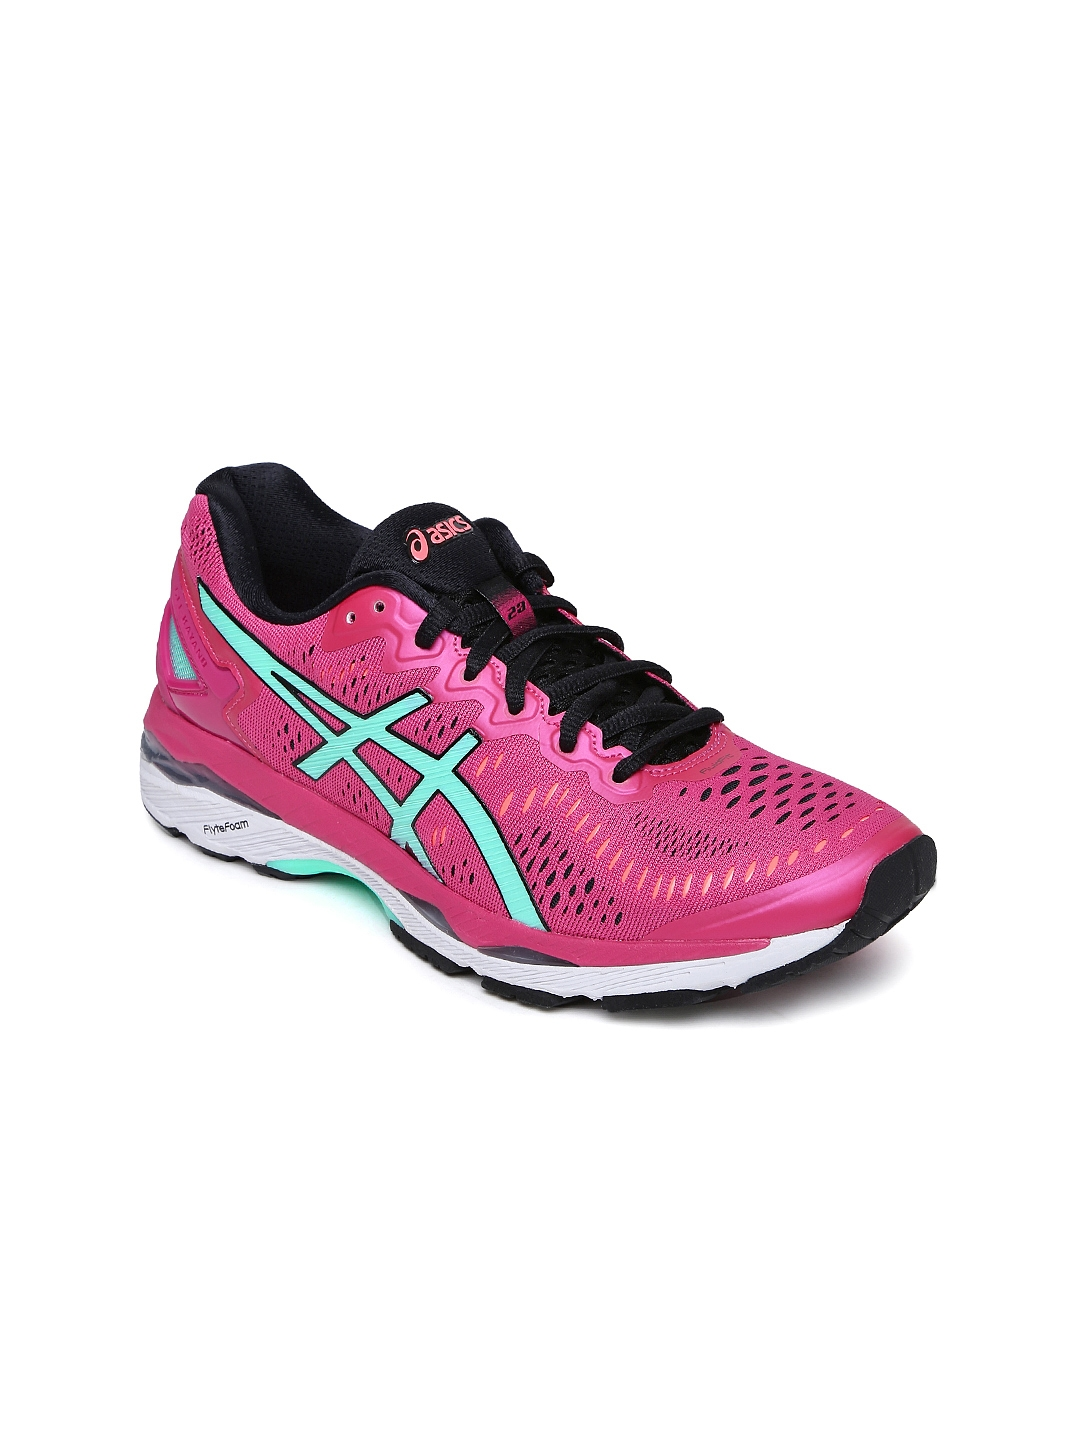 Buy ASICS Women Pink Gel Kayano 23 Running Shoes - Sports Shoes for ... 8a2d8fd54